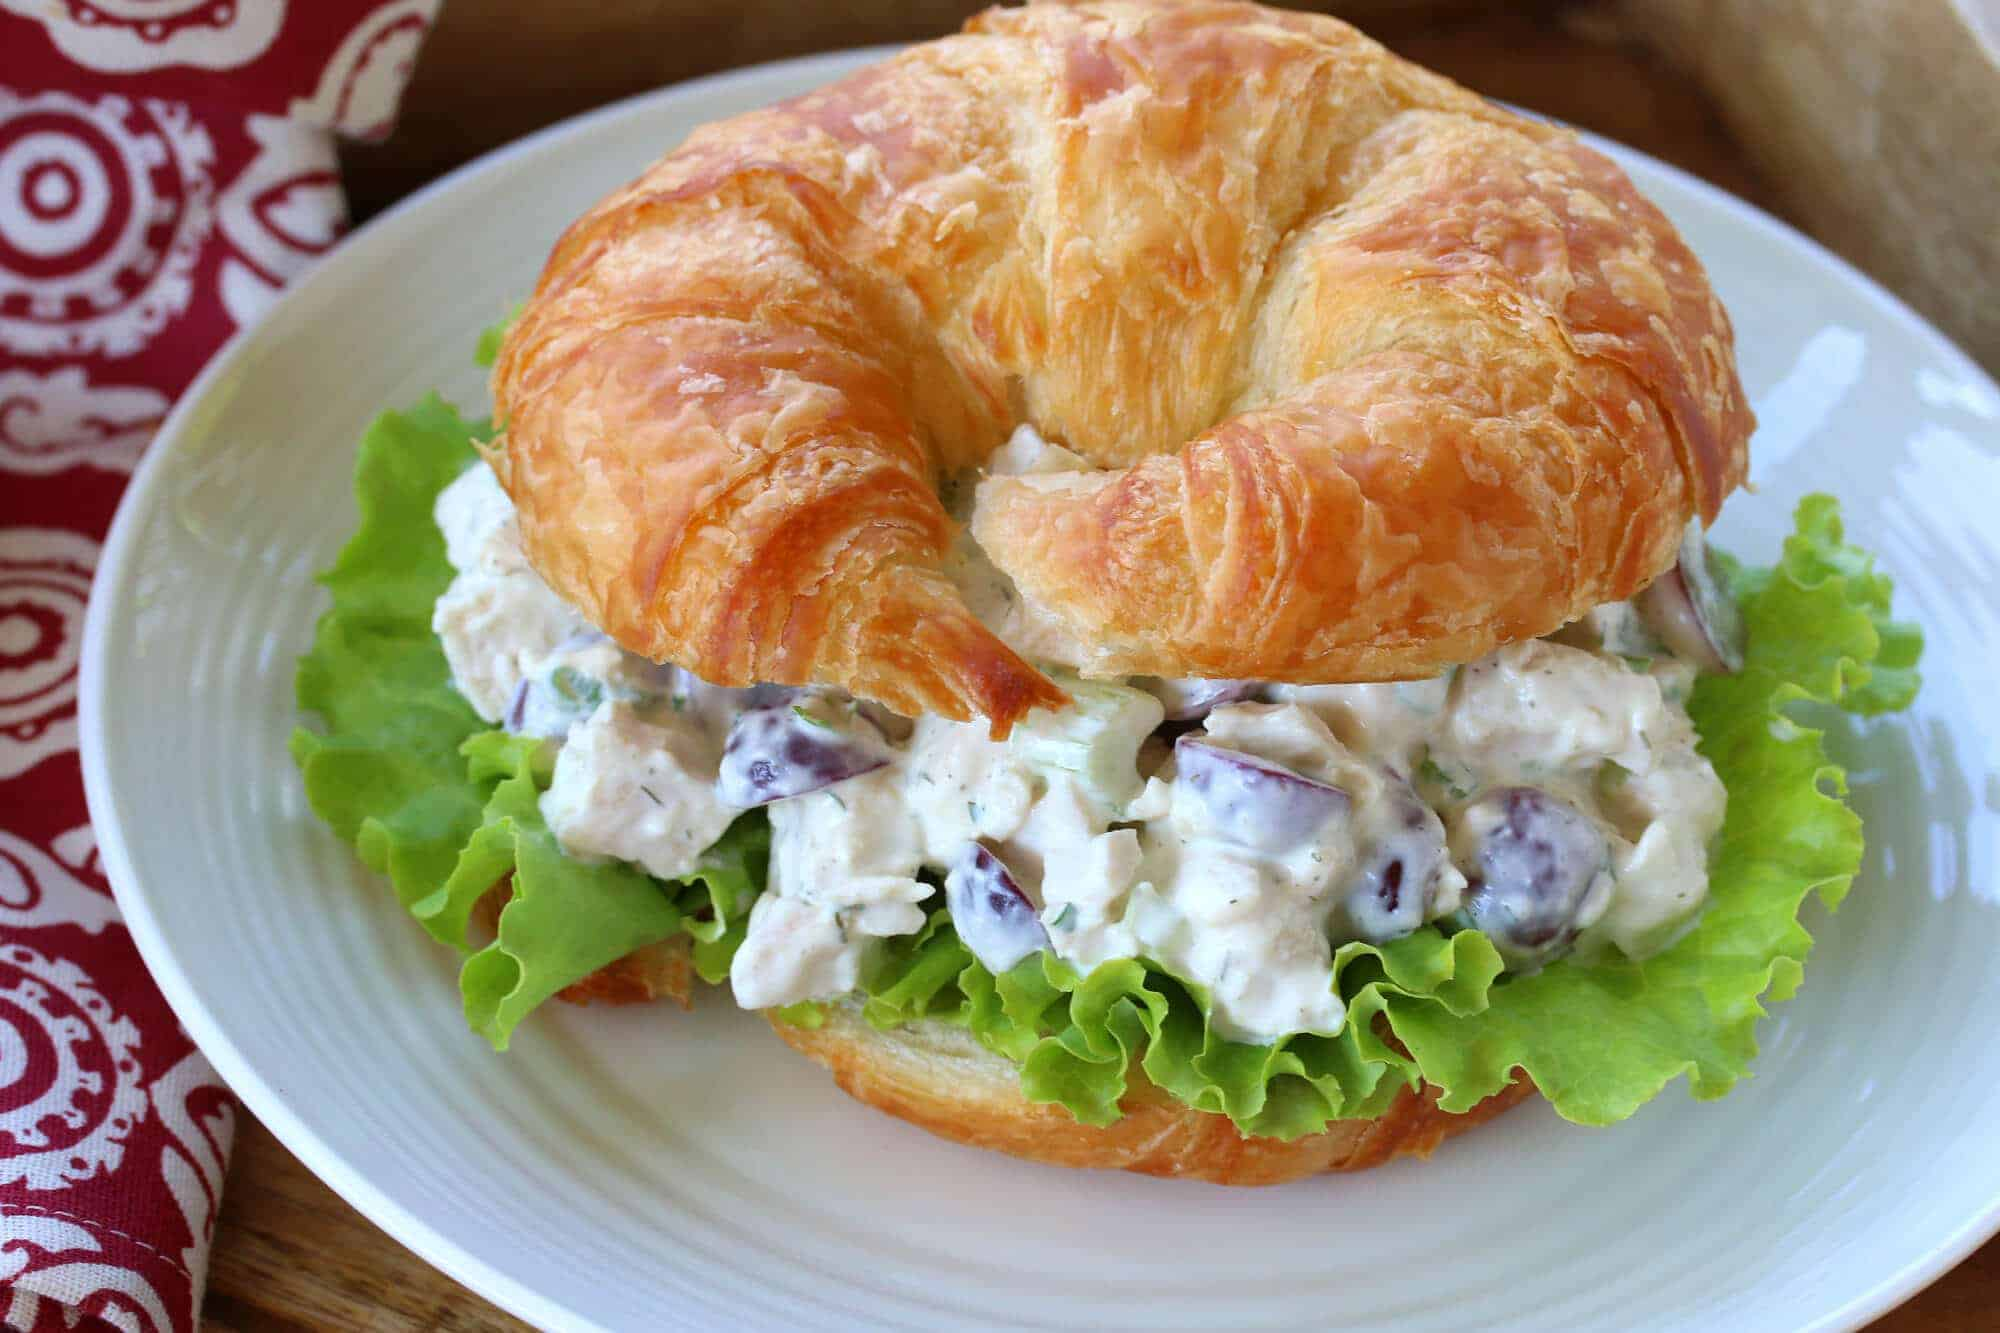 chicken salad recipe best homemade ultimate deli style croissants sandwiches